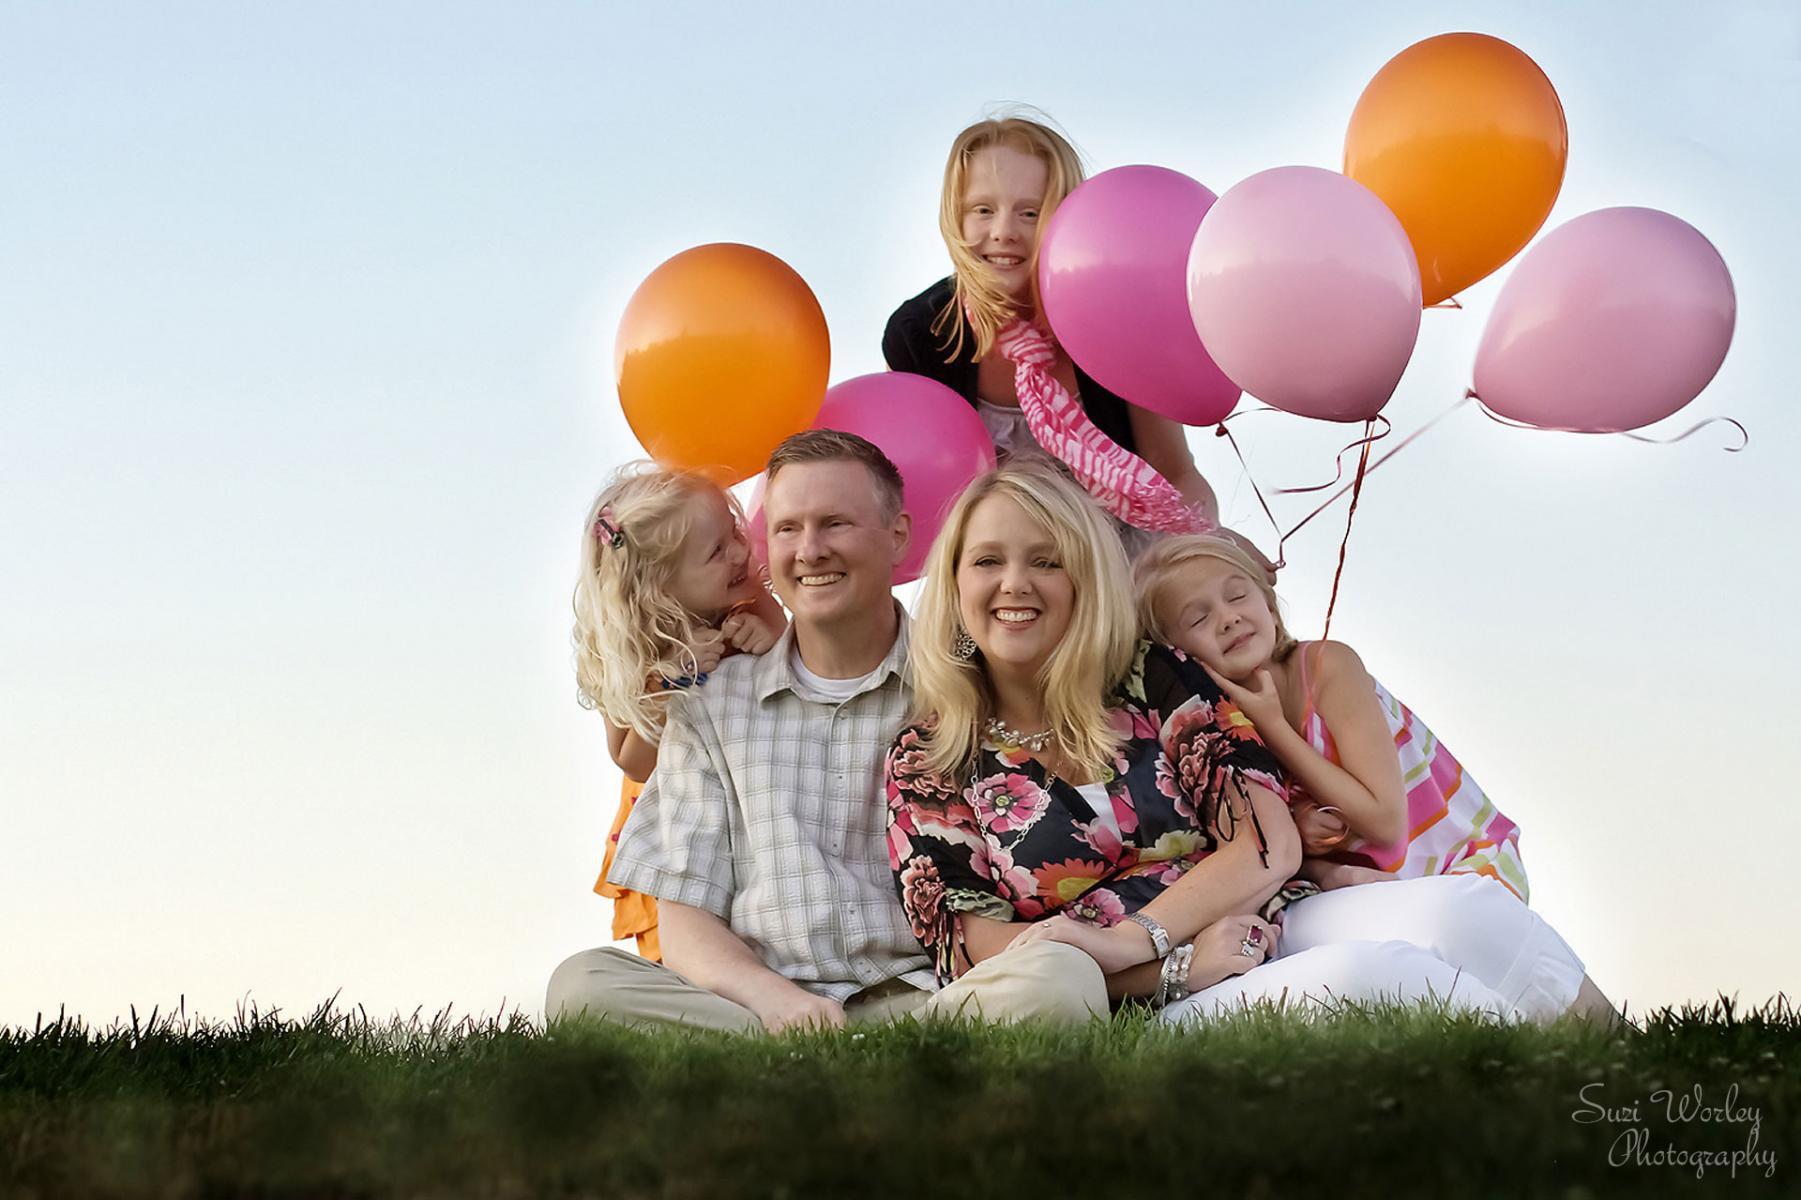 Balloons and love! #Familyphoto #portraits #girls #SuziWorleyPhotography